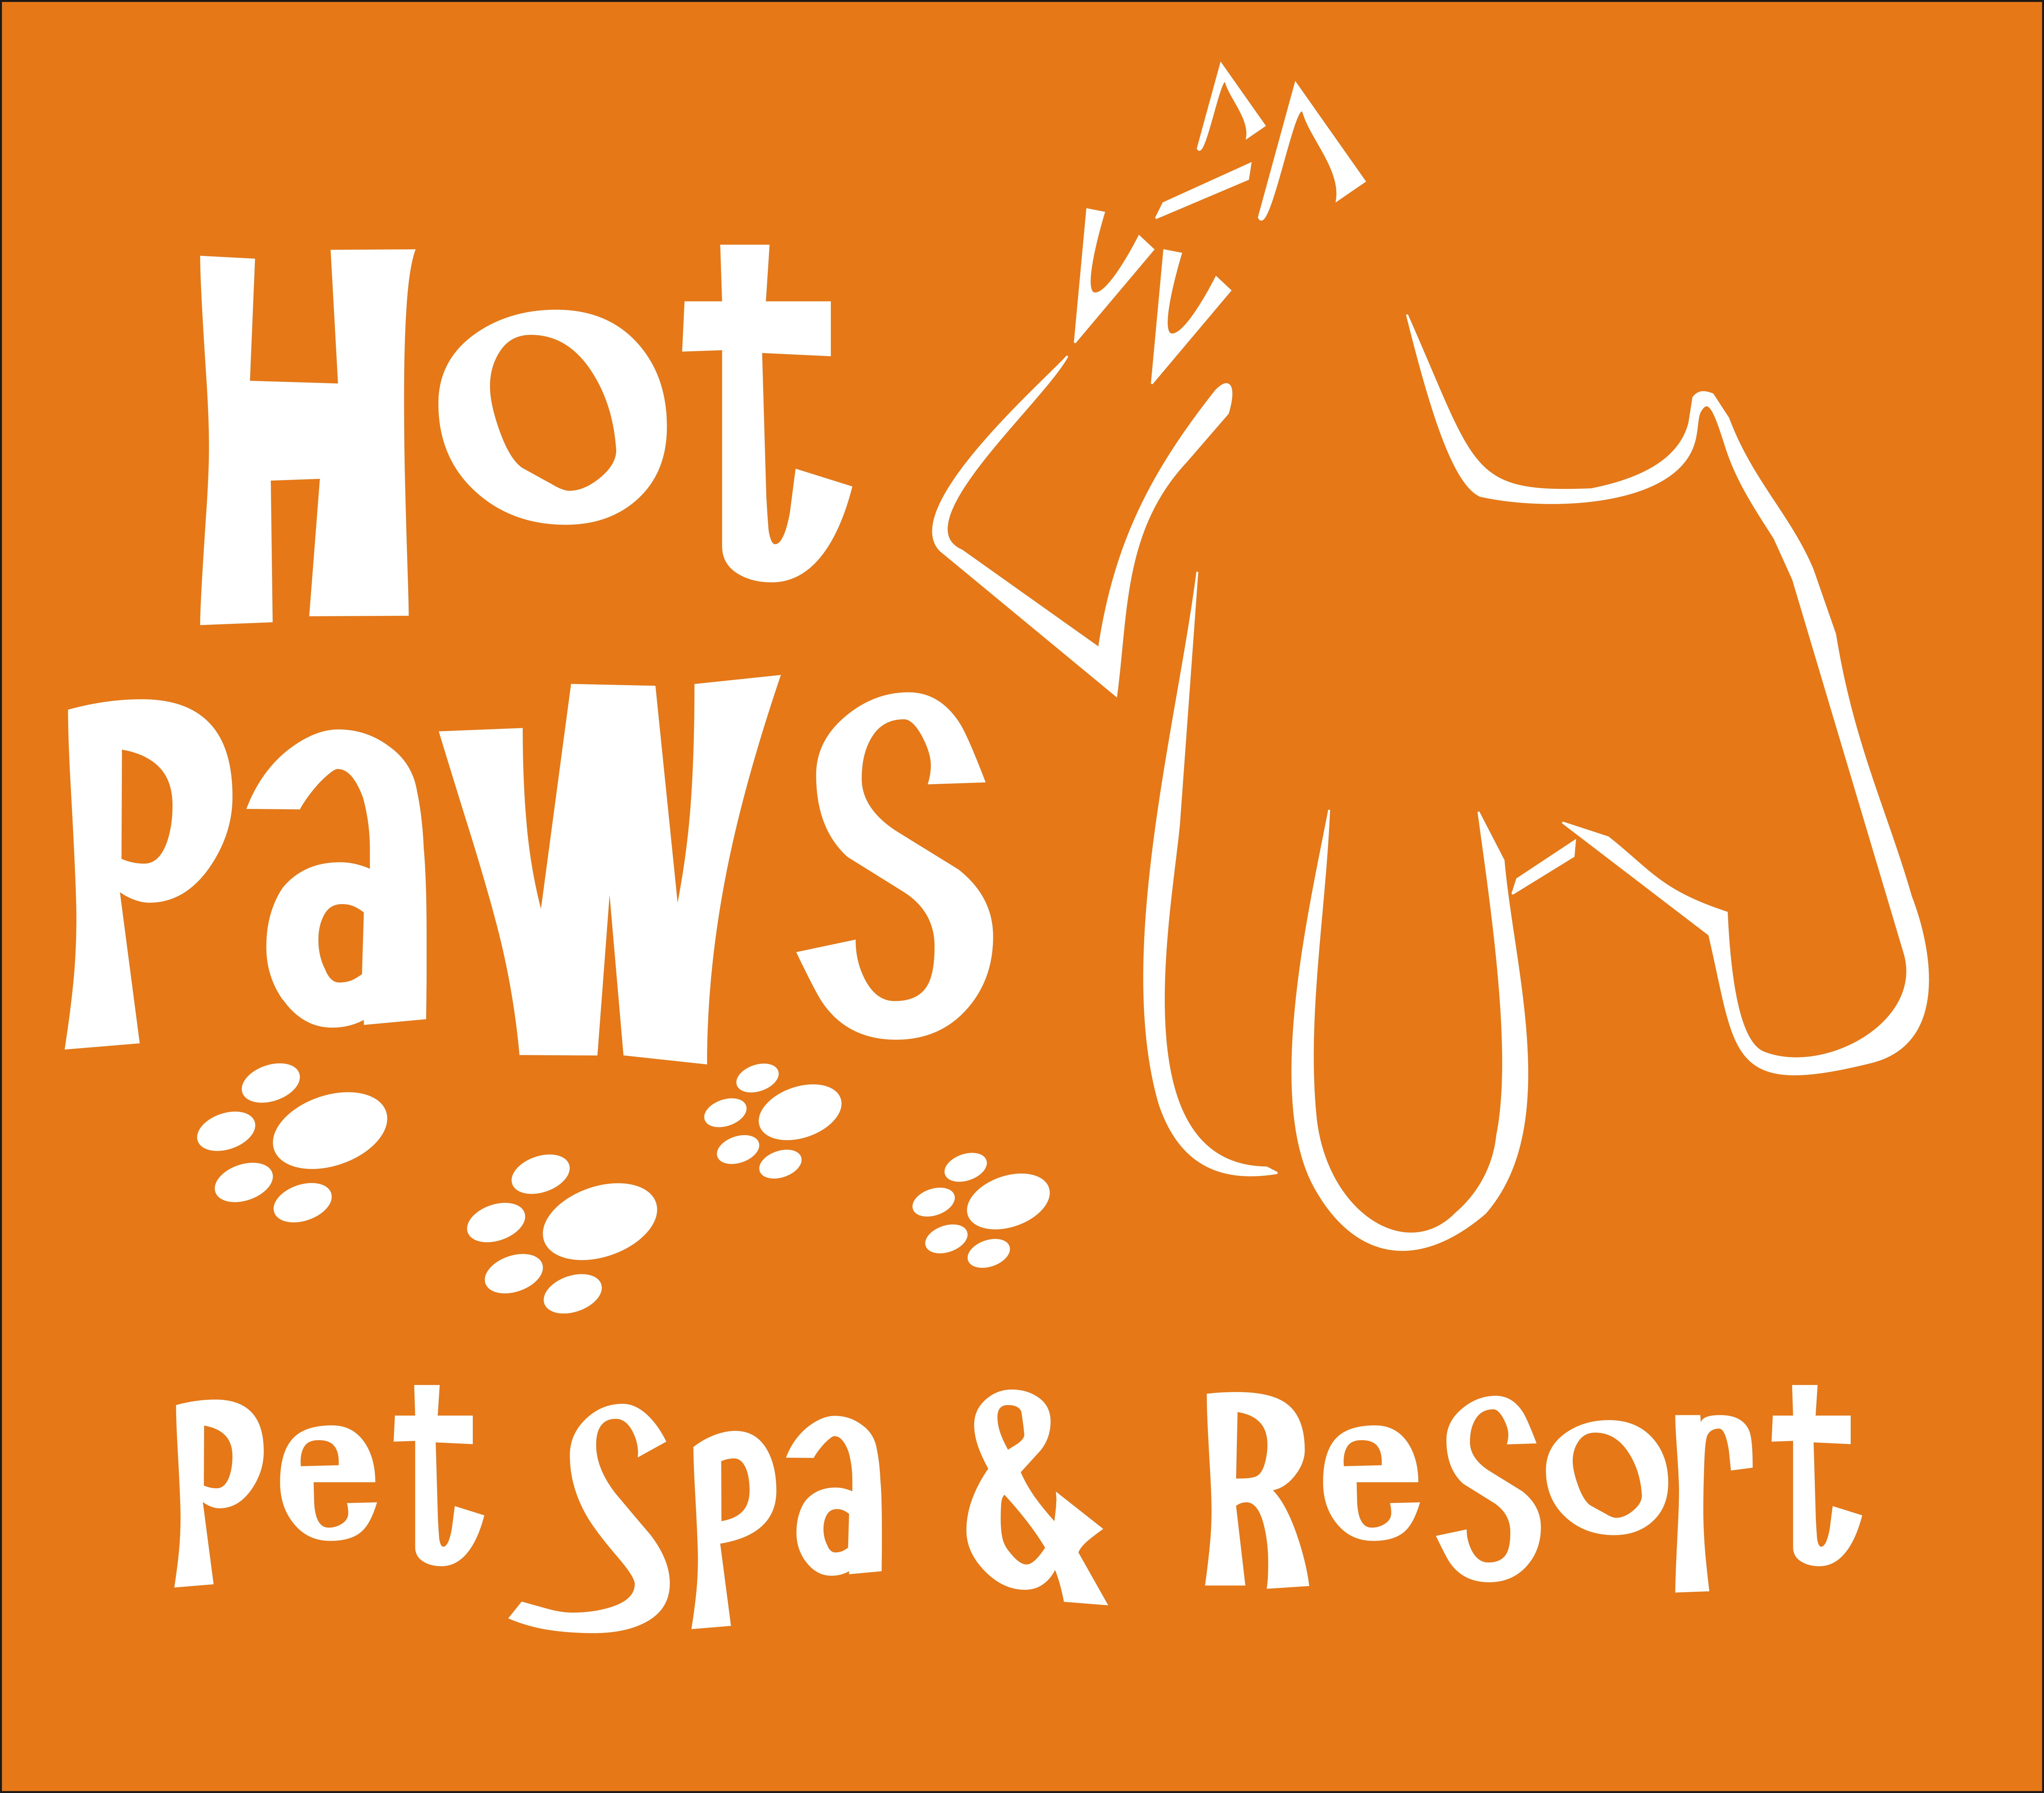 Hot Paws Pet Grooming, Hotel & Spa